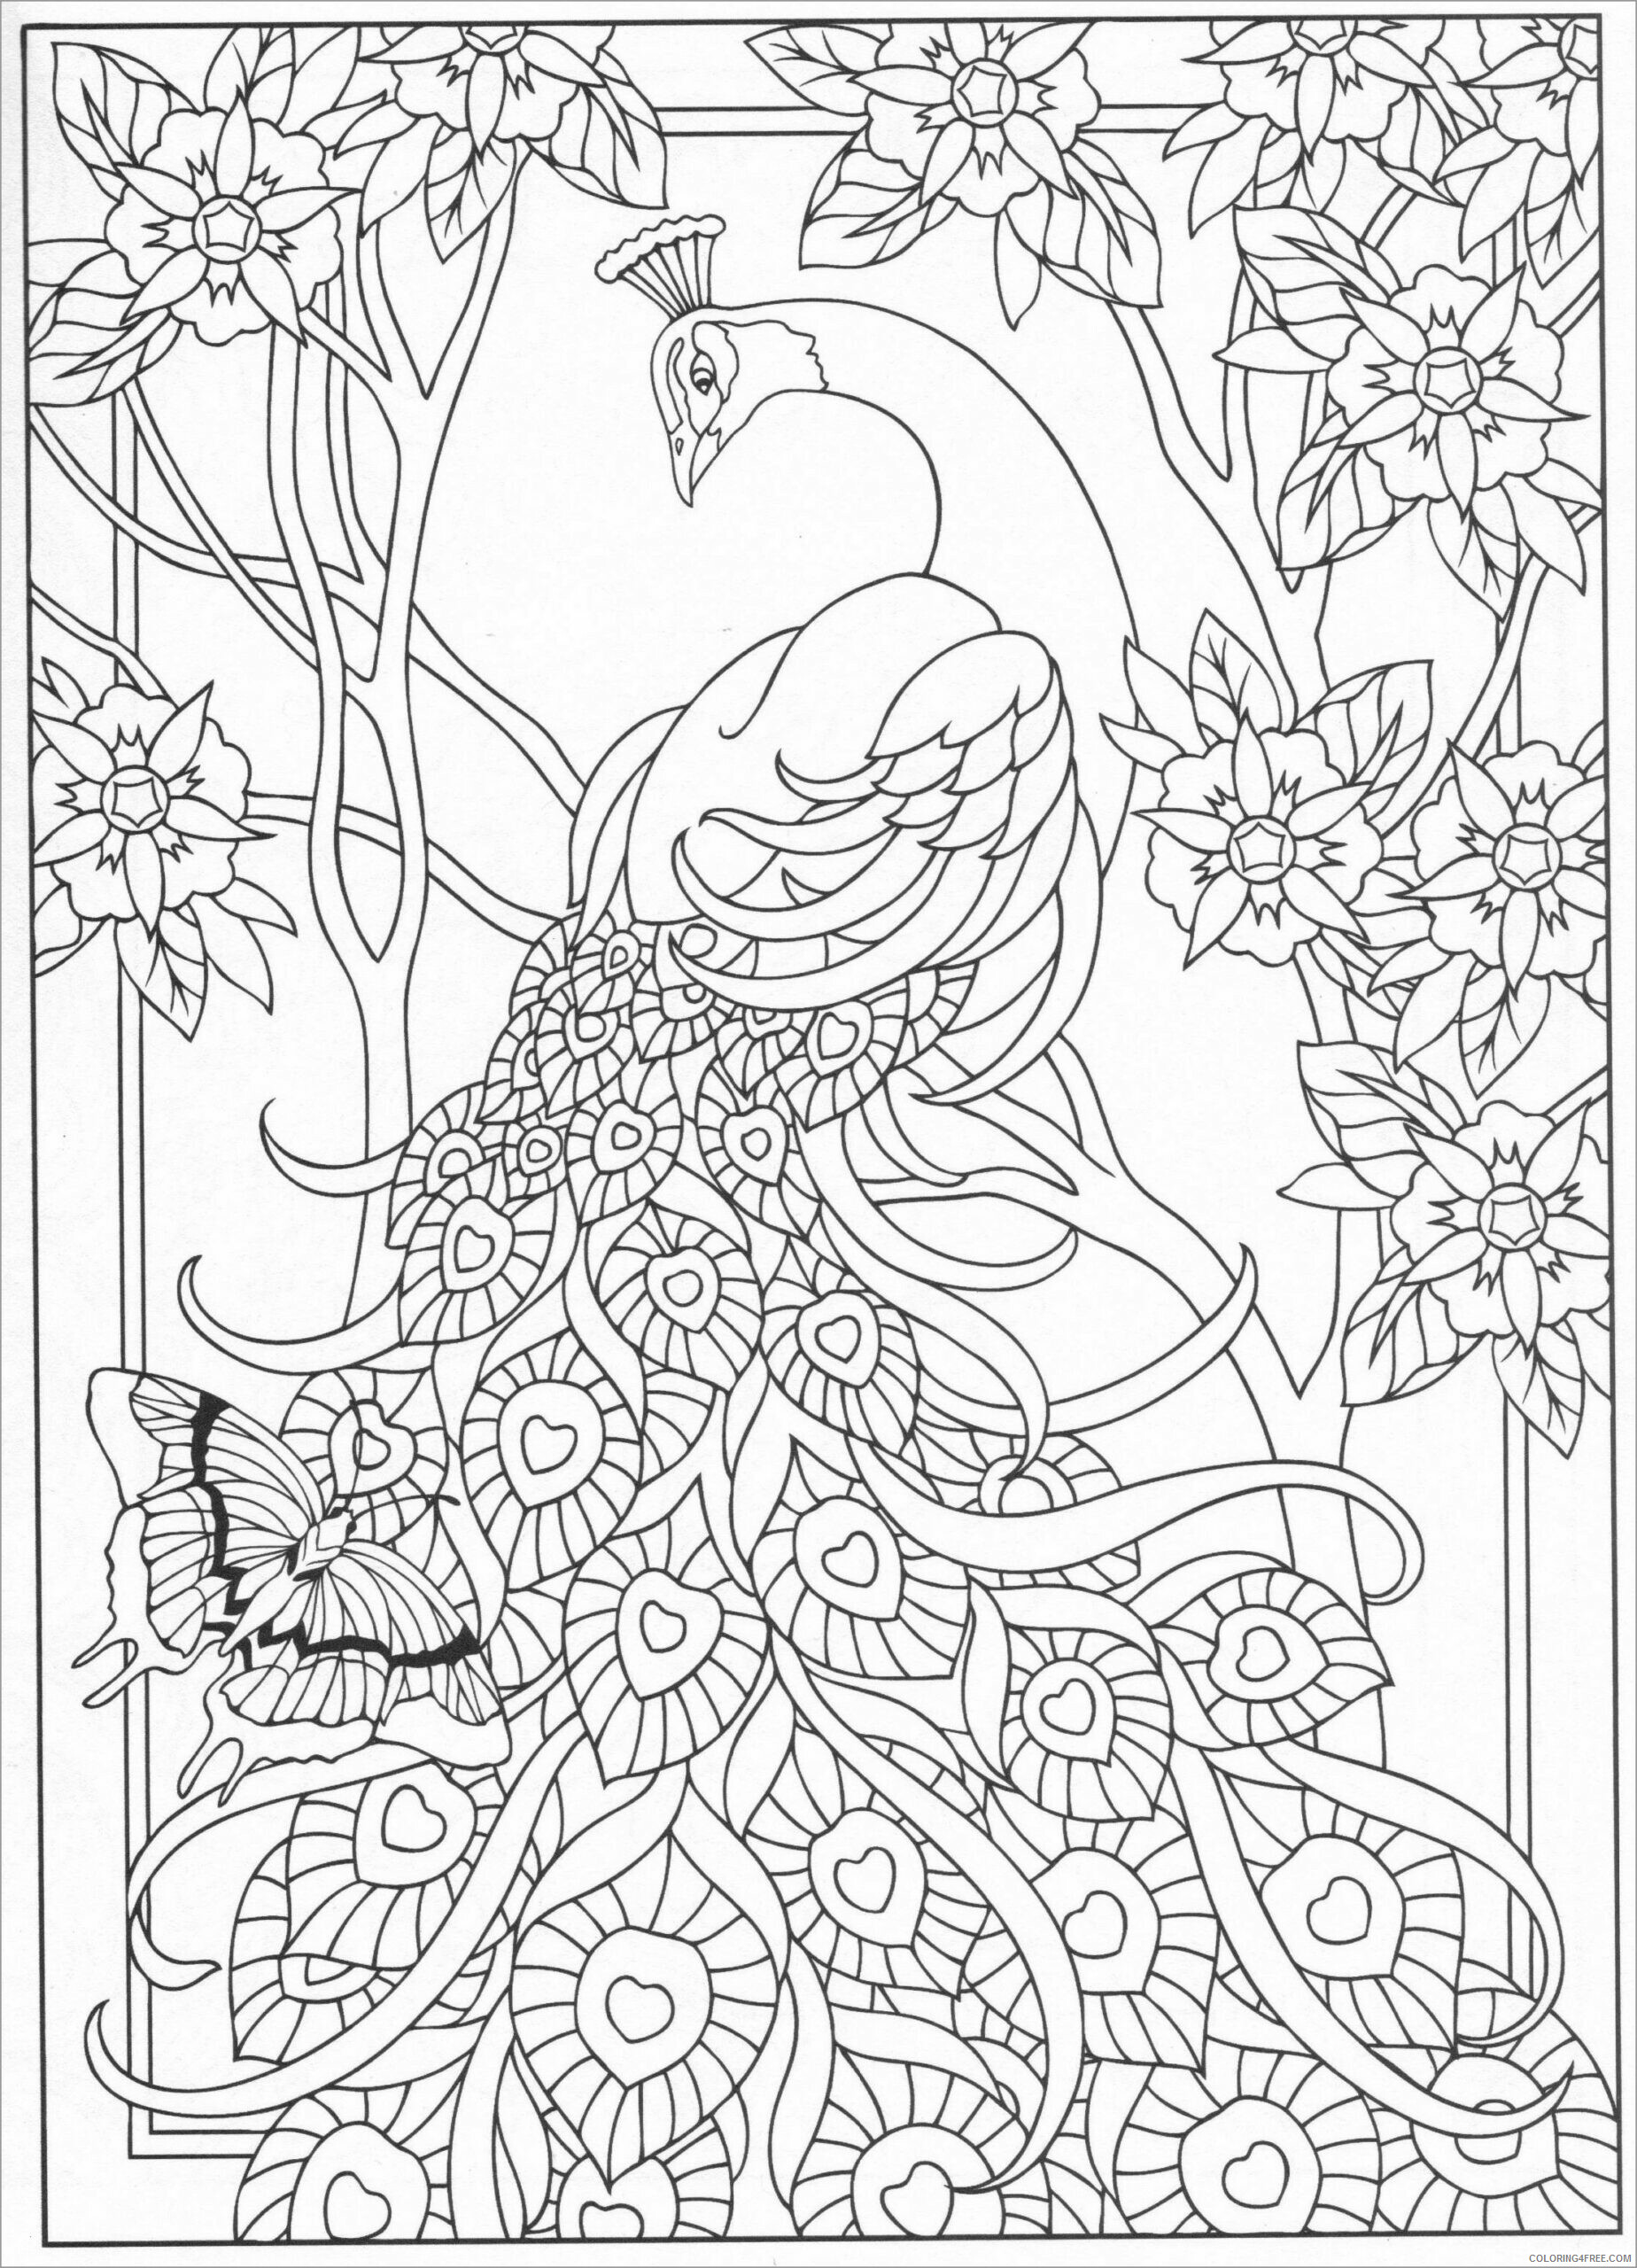 Adult Animals Coloring Pages peacock for adults Printable 2020 163 Coloring4free